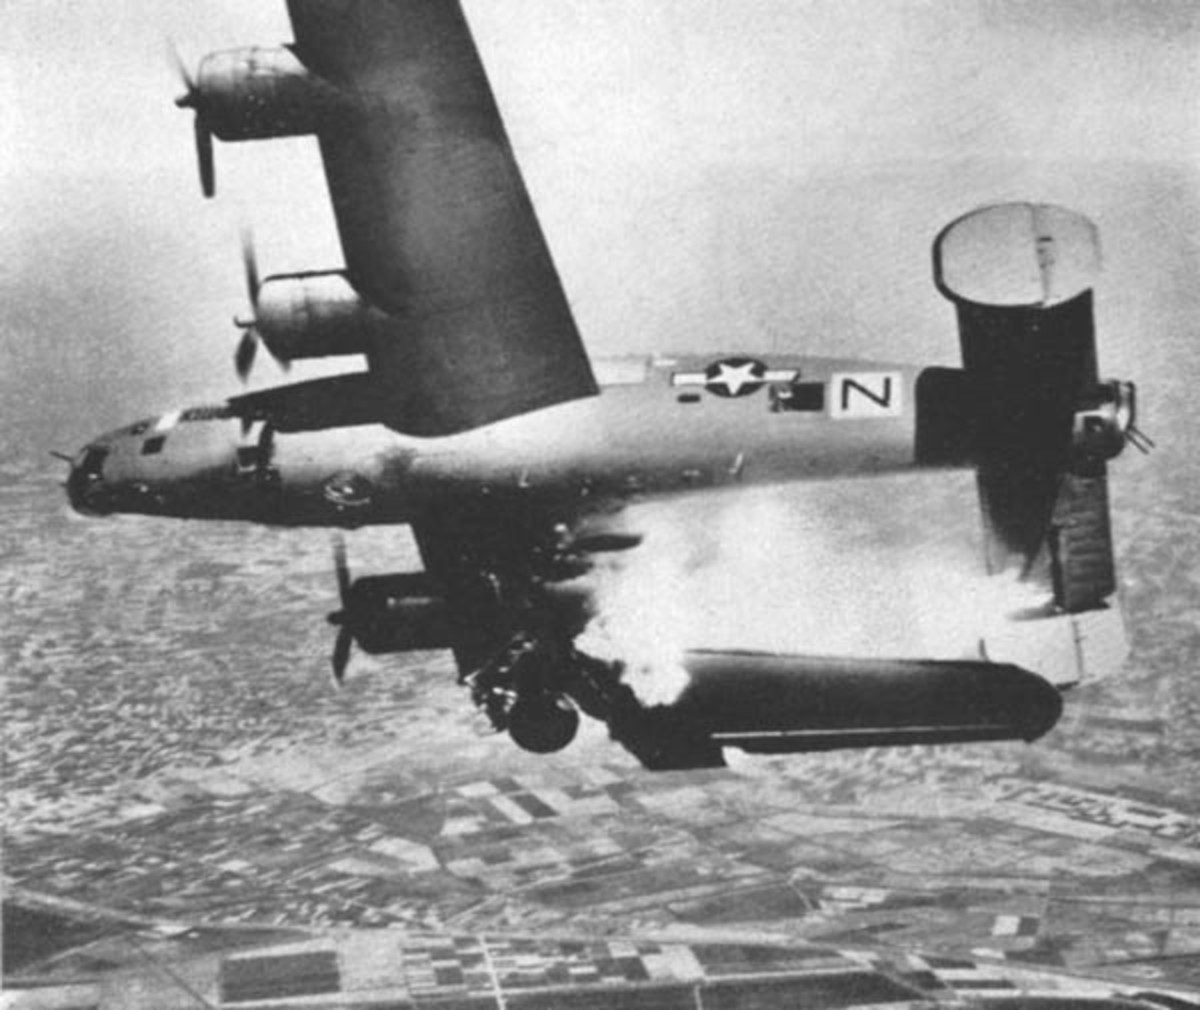 B-24 going down over Italy. Only 1 crewman survivied.